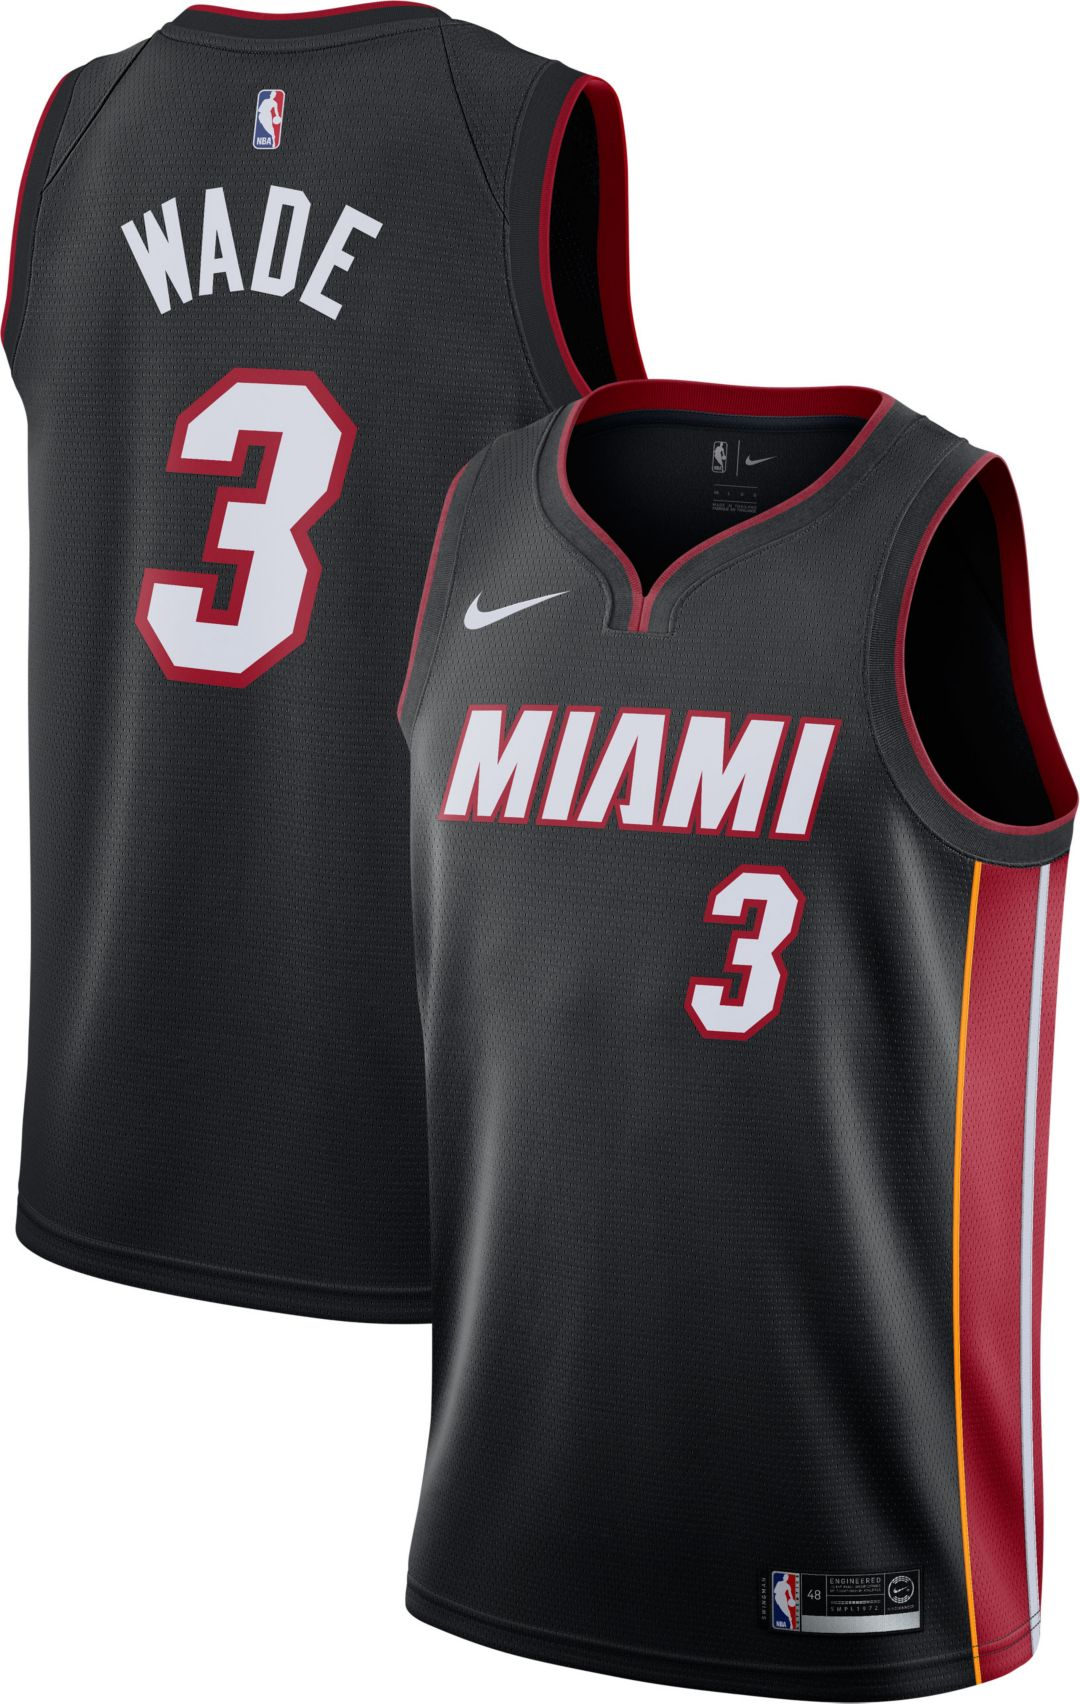 new arrival a415f 36ac3 Nike Men's Miami Heat Dwyane Wade #3 Black Dri-FIT Swingman Jersey